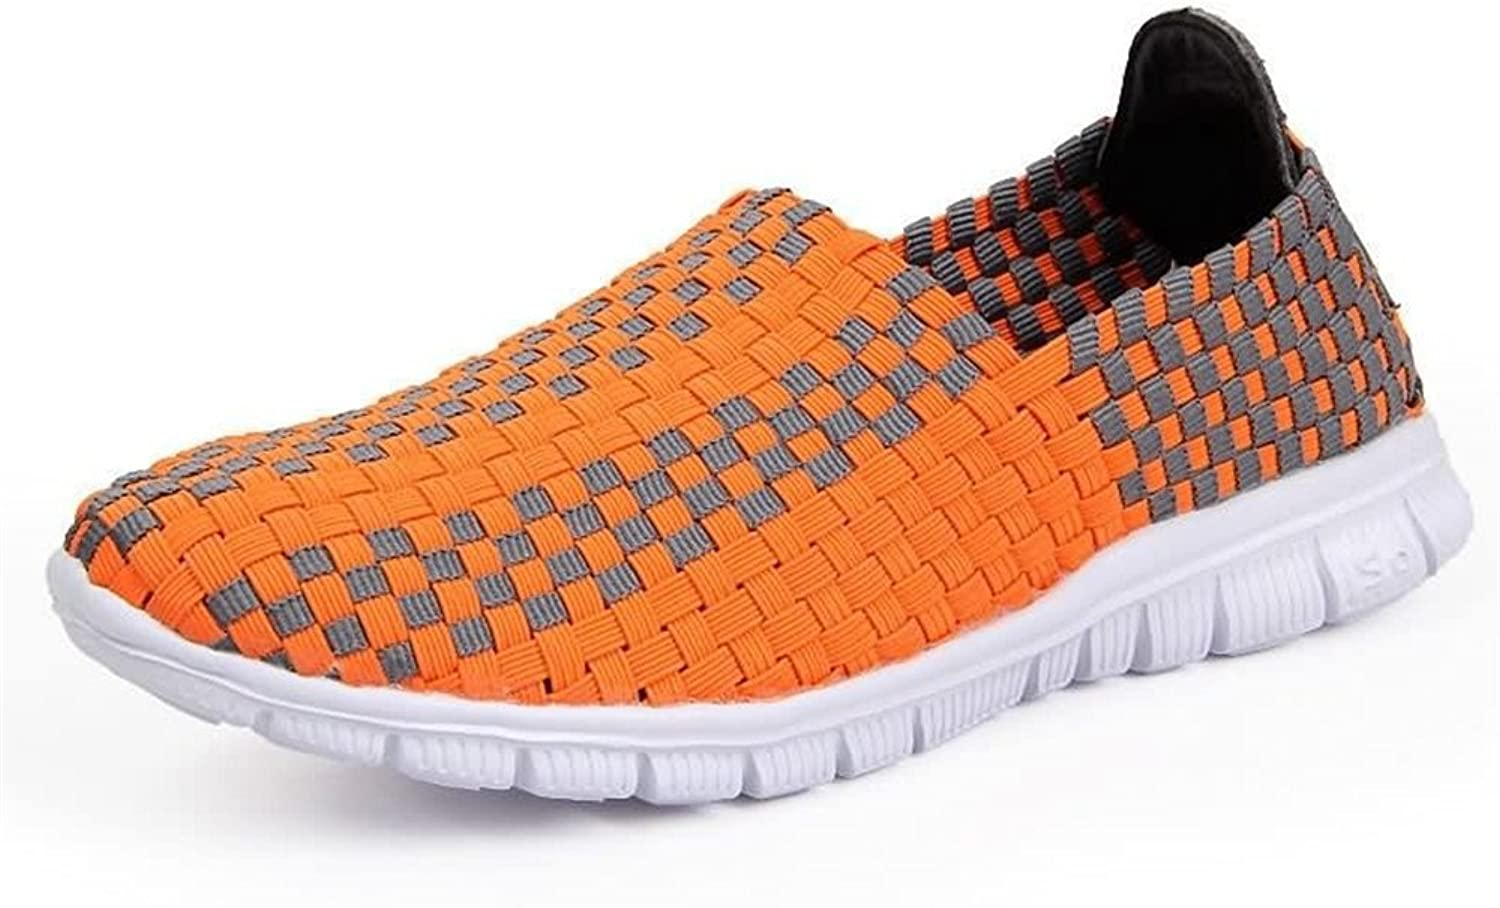 Hilotu Women's and Men's Camouflage Breathable Athletic shoes Grid Pattern Slip On Splice Vamp Leisure Fashion Sneaker Wild Breathable HandKnitted shoes (color   orange, Size   3 M US Little Kid)